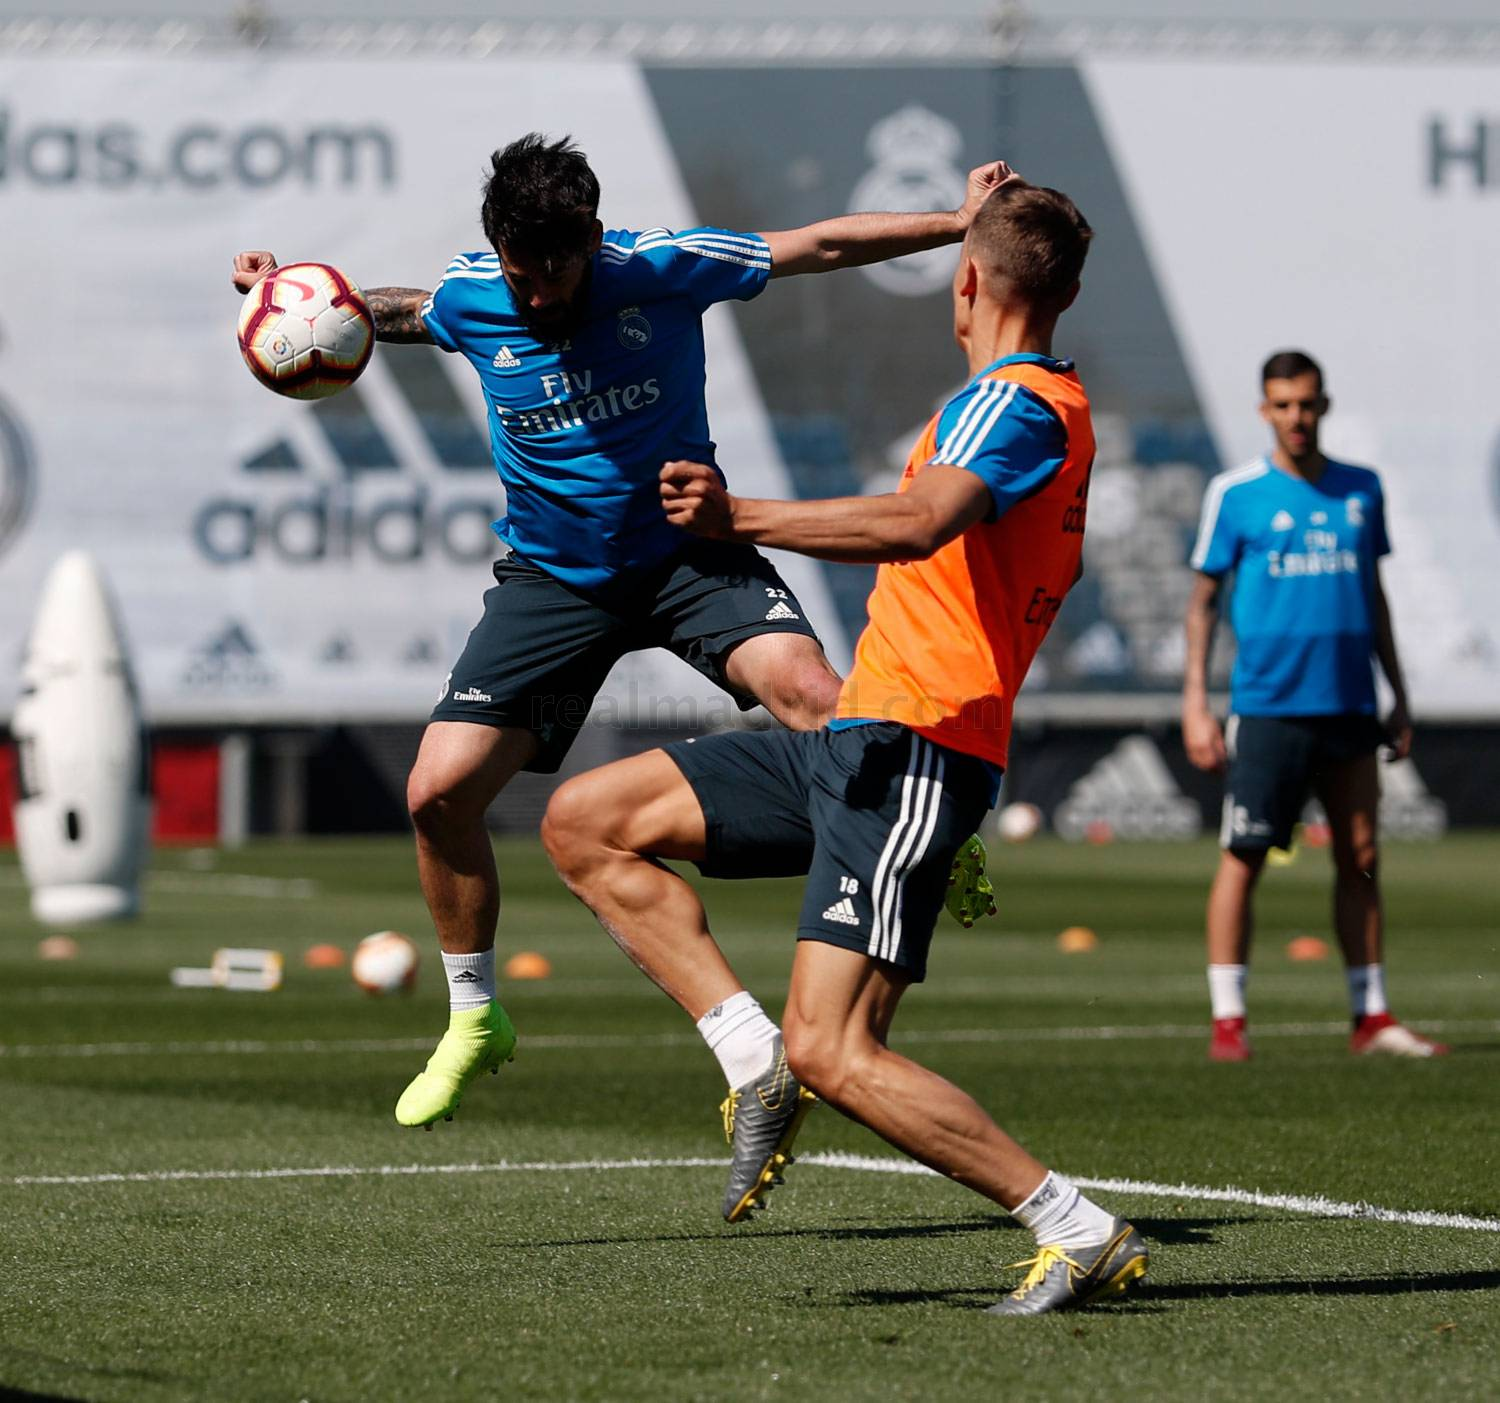 Real Madrid - Entrenamiento del Real Madrid - 27-03-2019